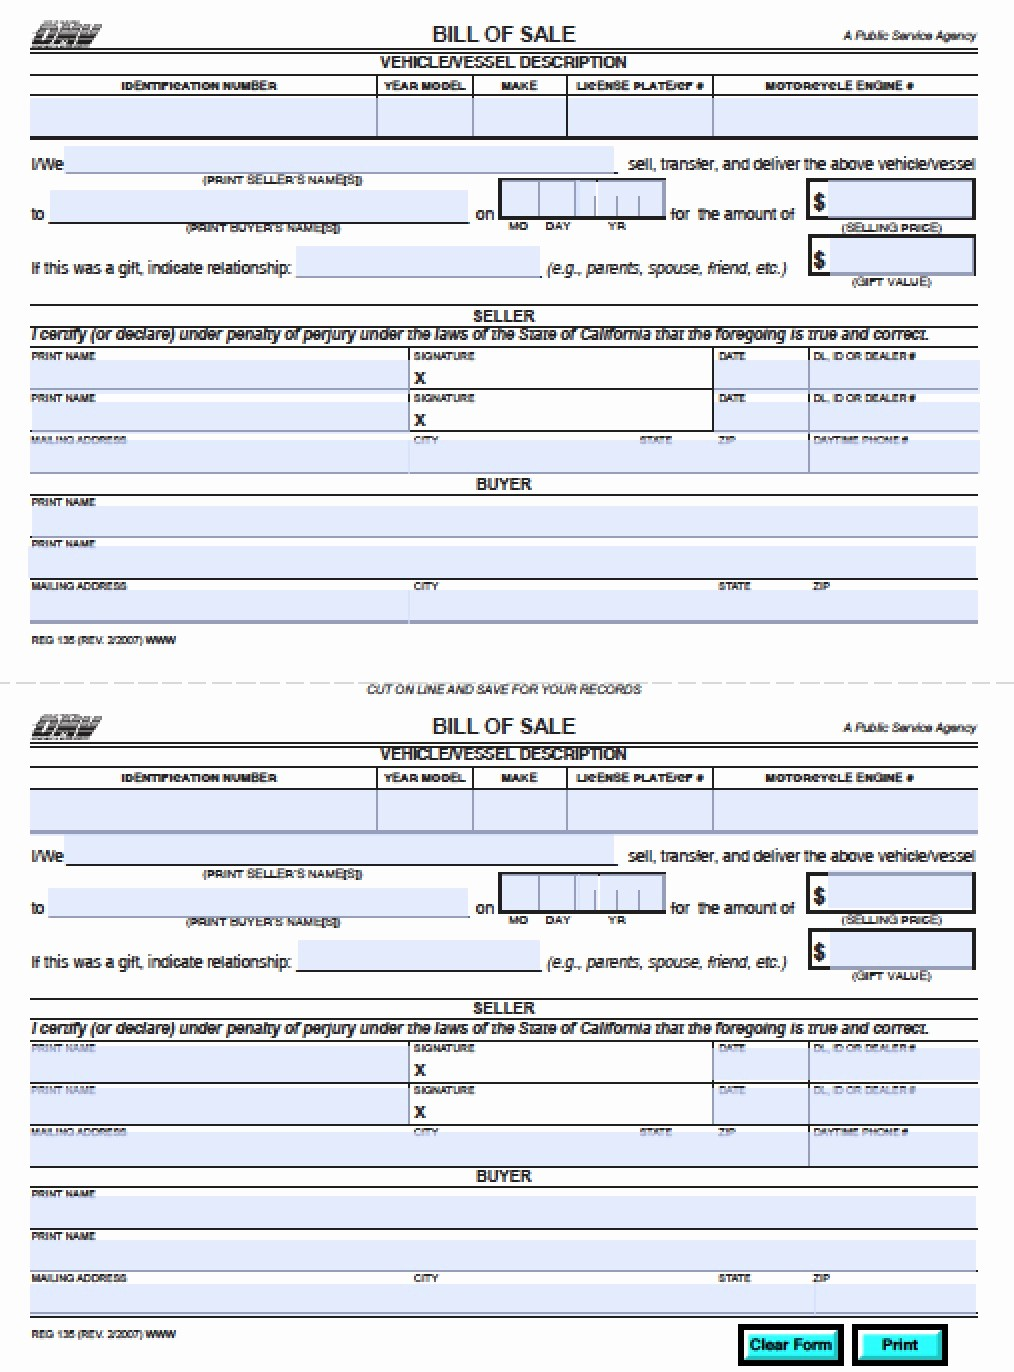 Dmv Bill Of Sell form New Free California Dmv Bill Of Sale Reg 135